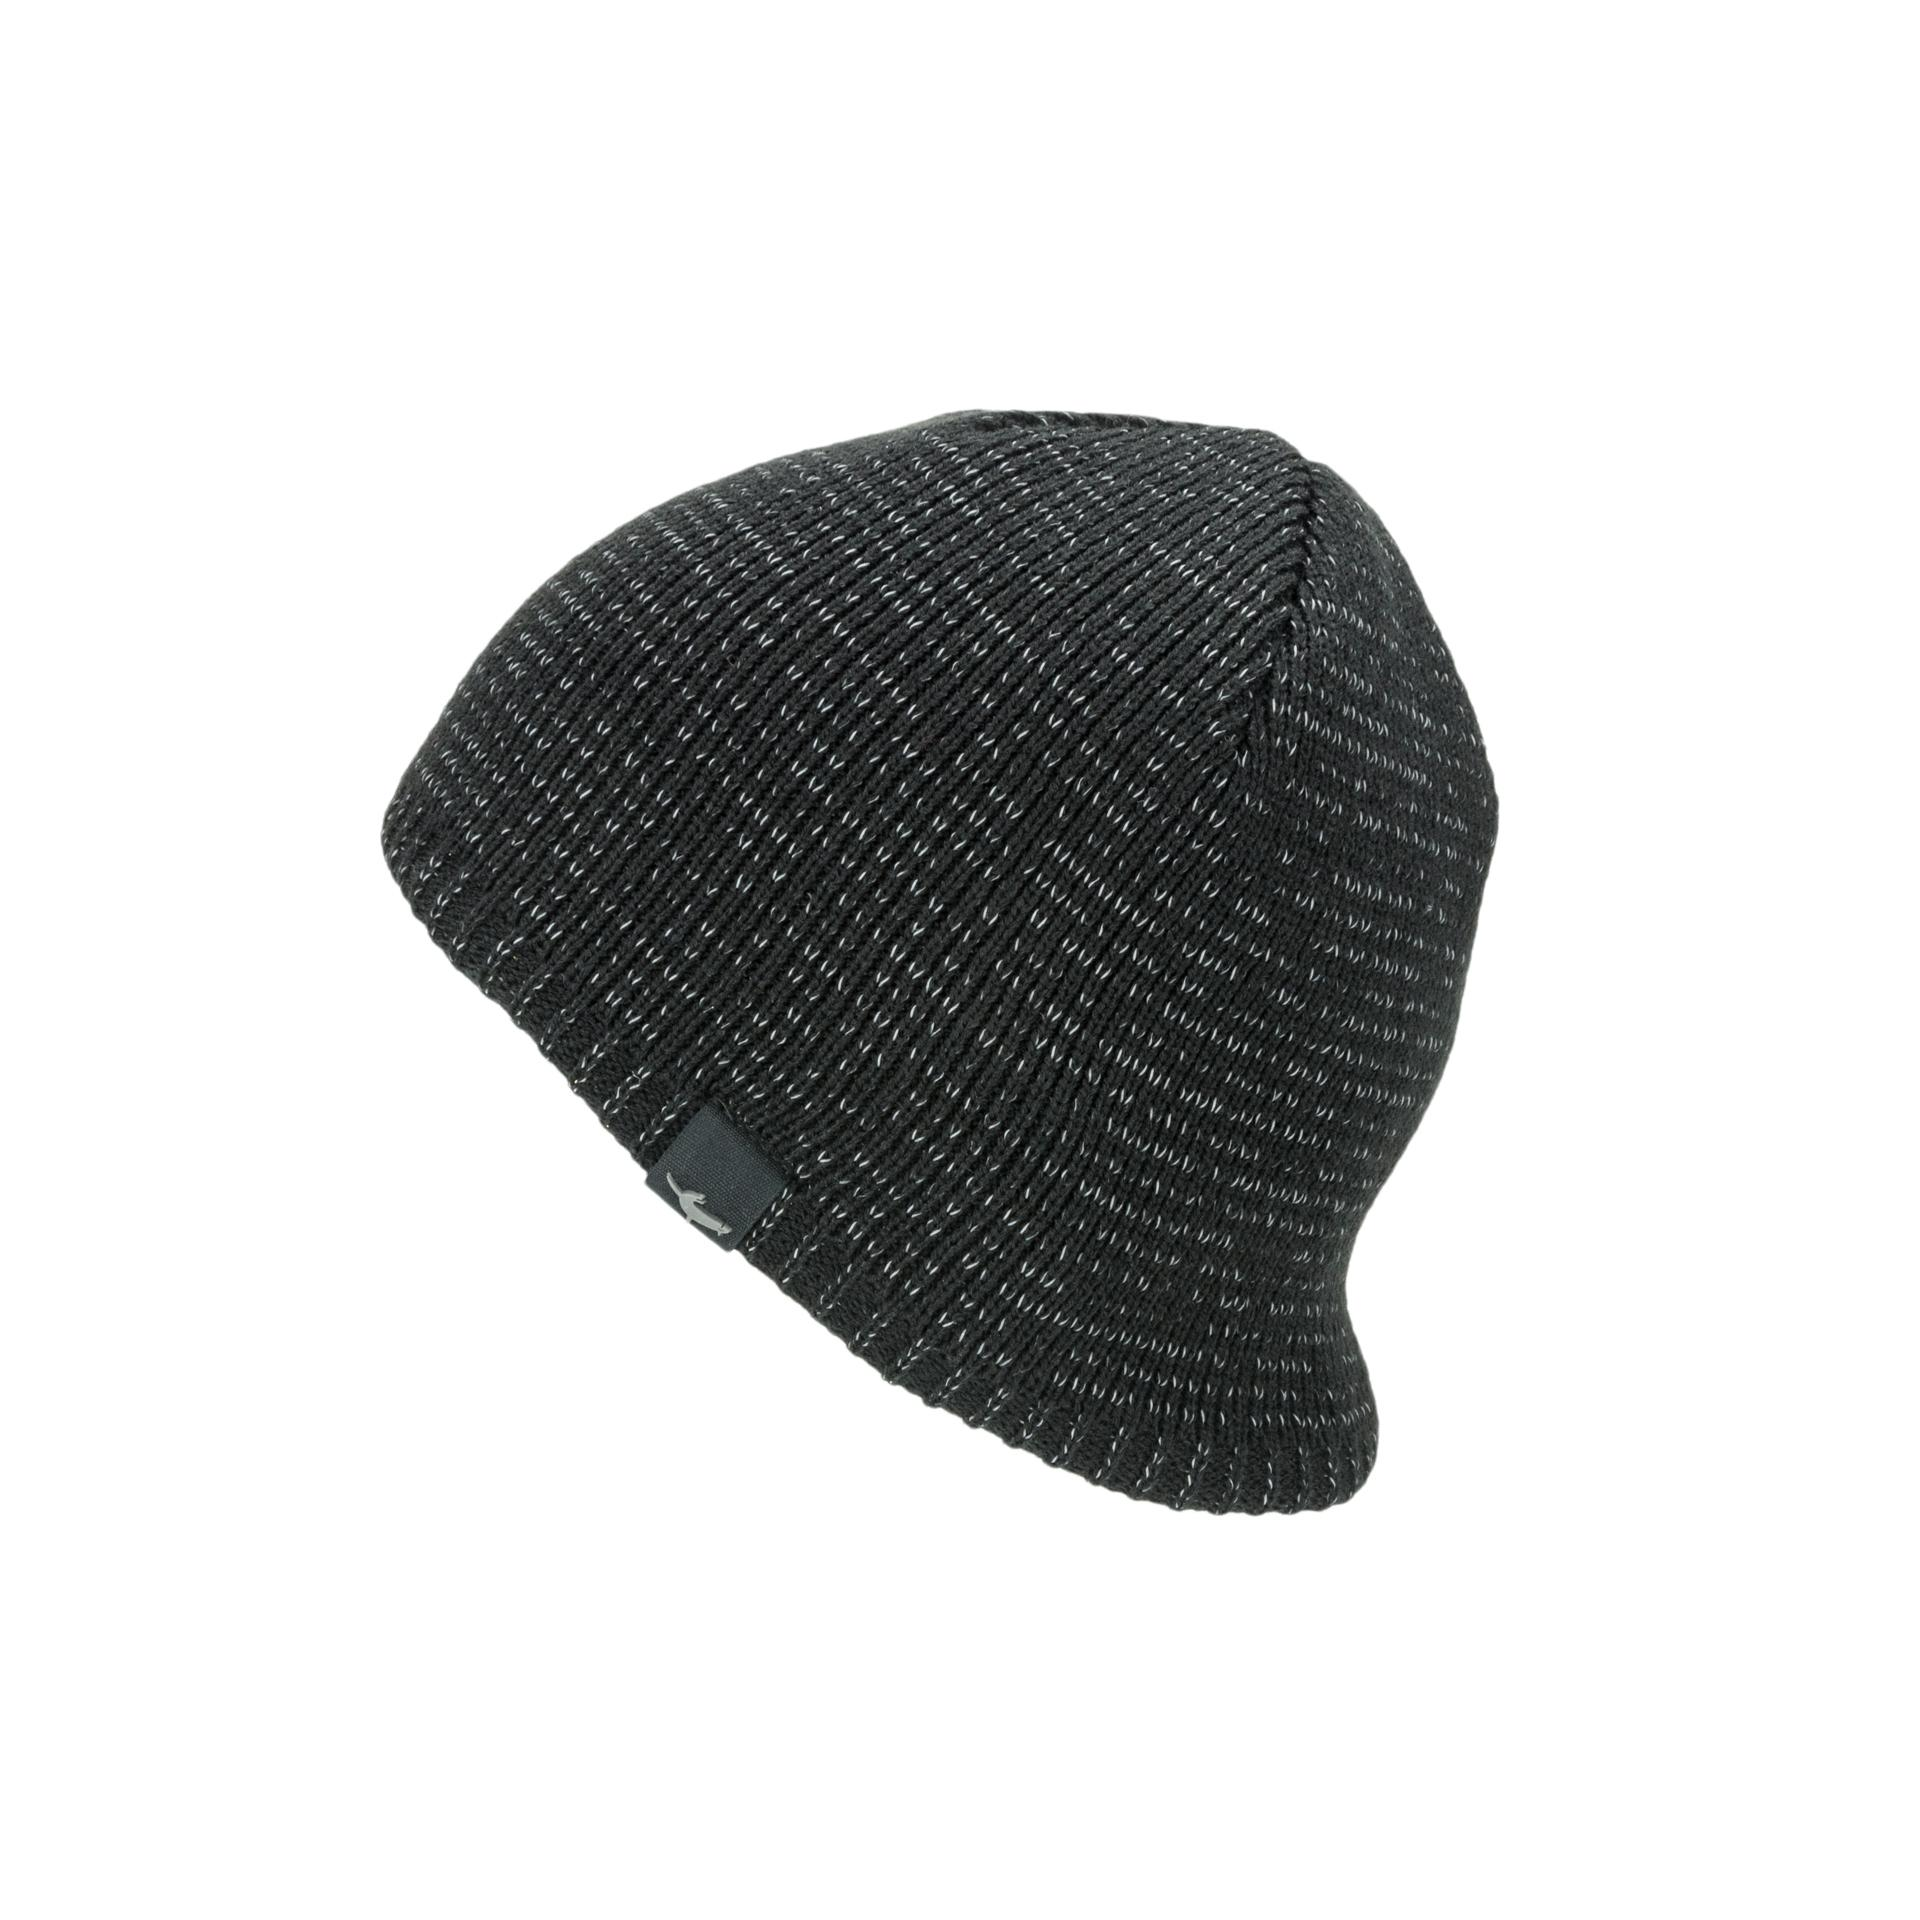 Afbeelding Sealskinz Casual muts waterdicht voor Heren Zwart  / Waterproof Cold Weather Reflective Beanie Black